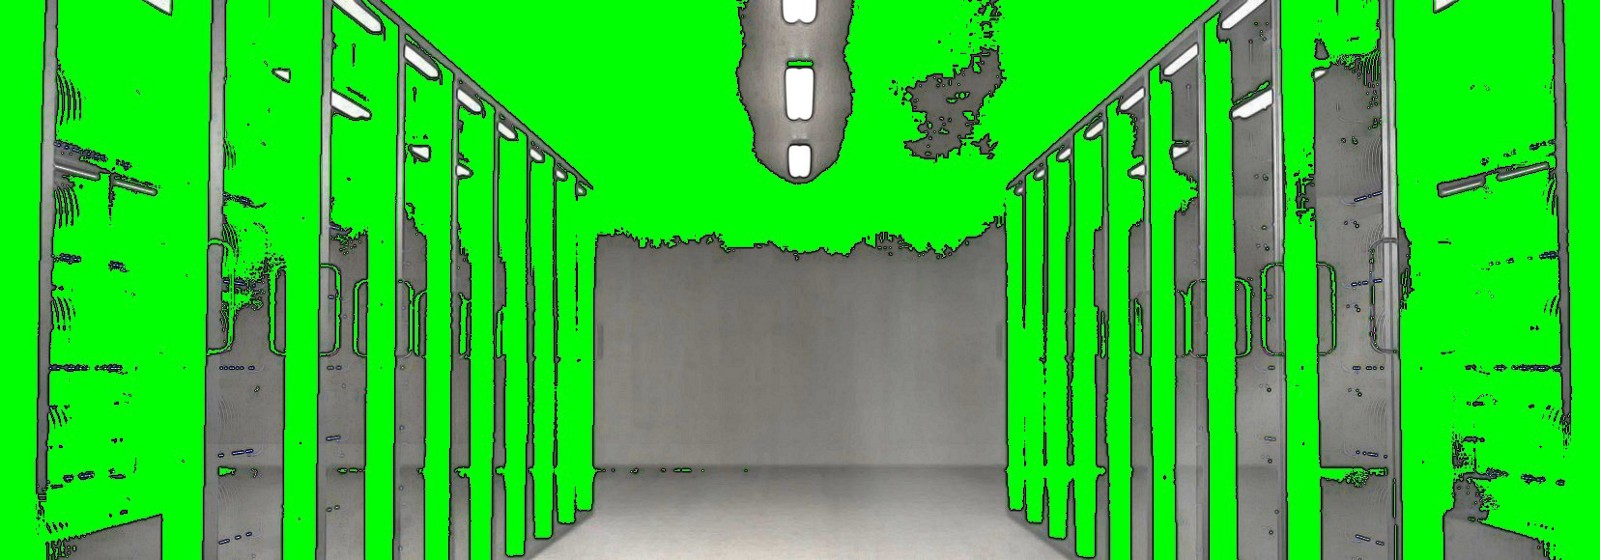 /4-controversies-that-follow-the-construction-of-hyperscale-data-centers-4d79695921ad feature image